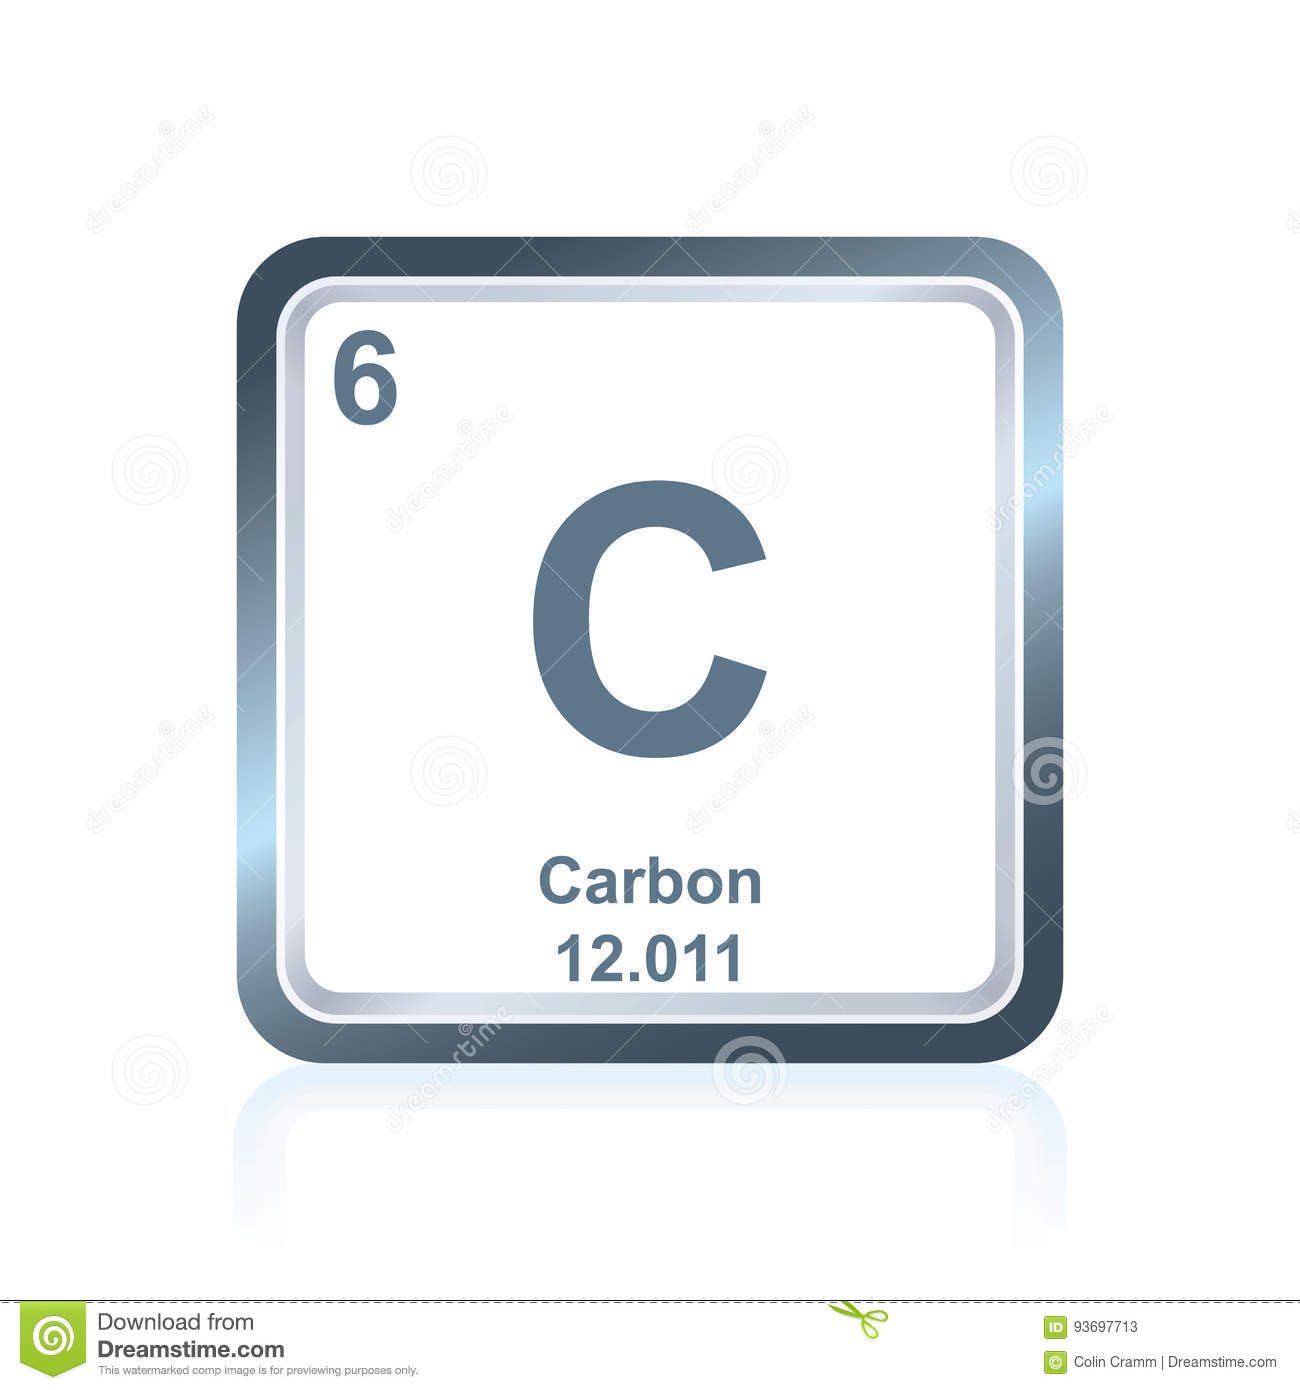 Chemical element carbon from the periodic table stock vector download chemical element carbon from the periodic table stock vector illustration of carbon scientific urtaz Choice Image